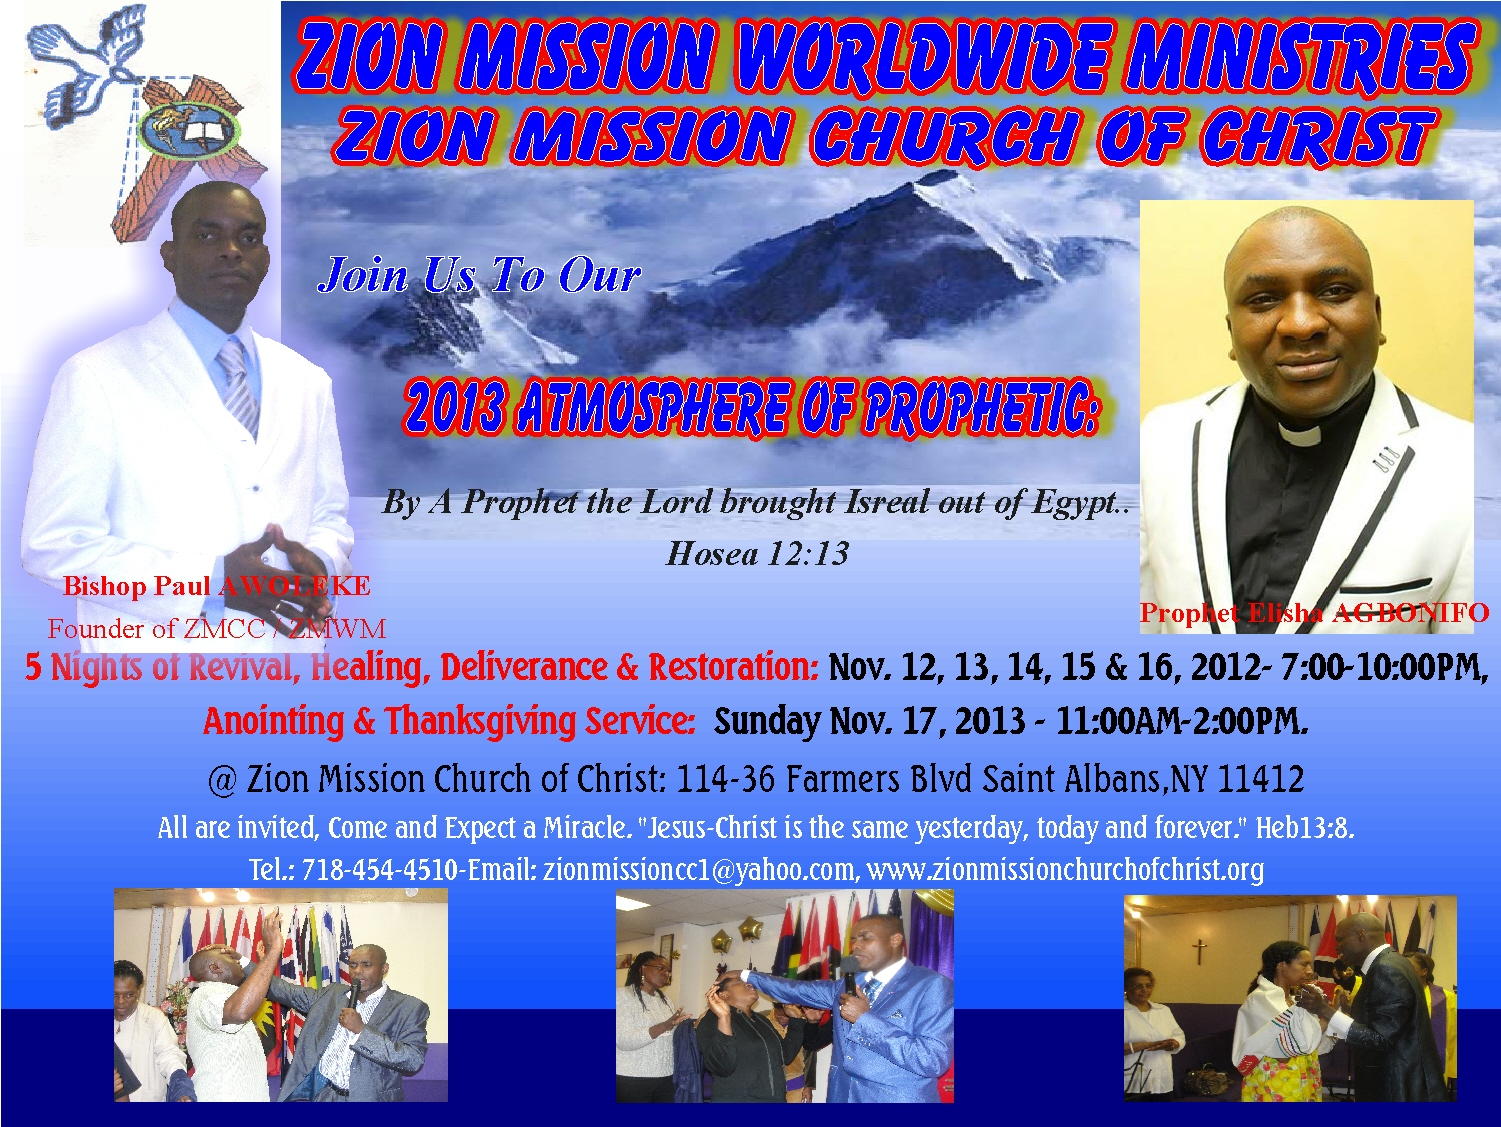 2013 Atmosphere of Prophetic